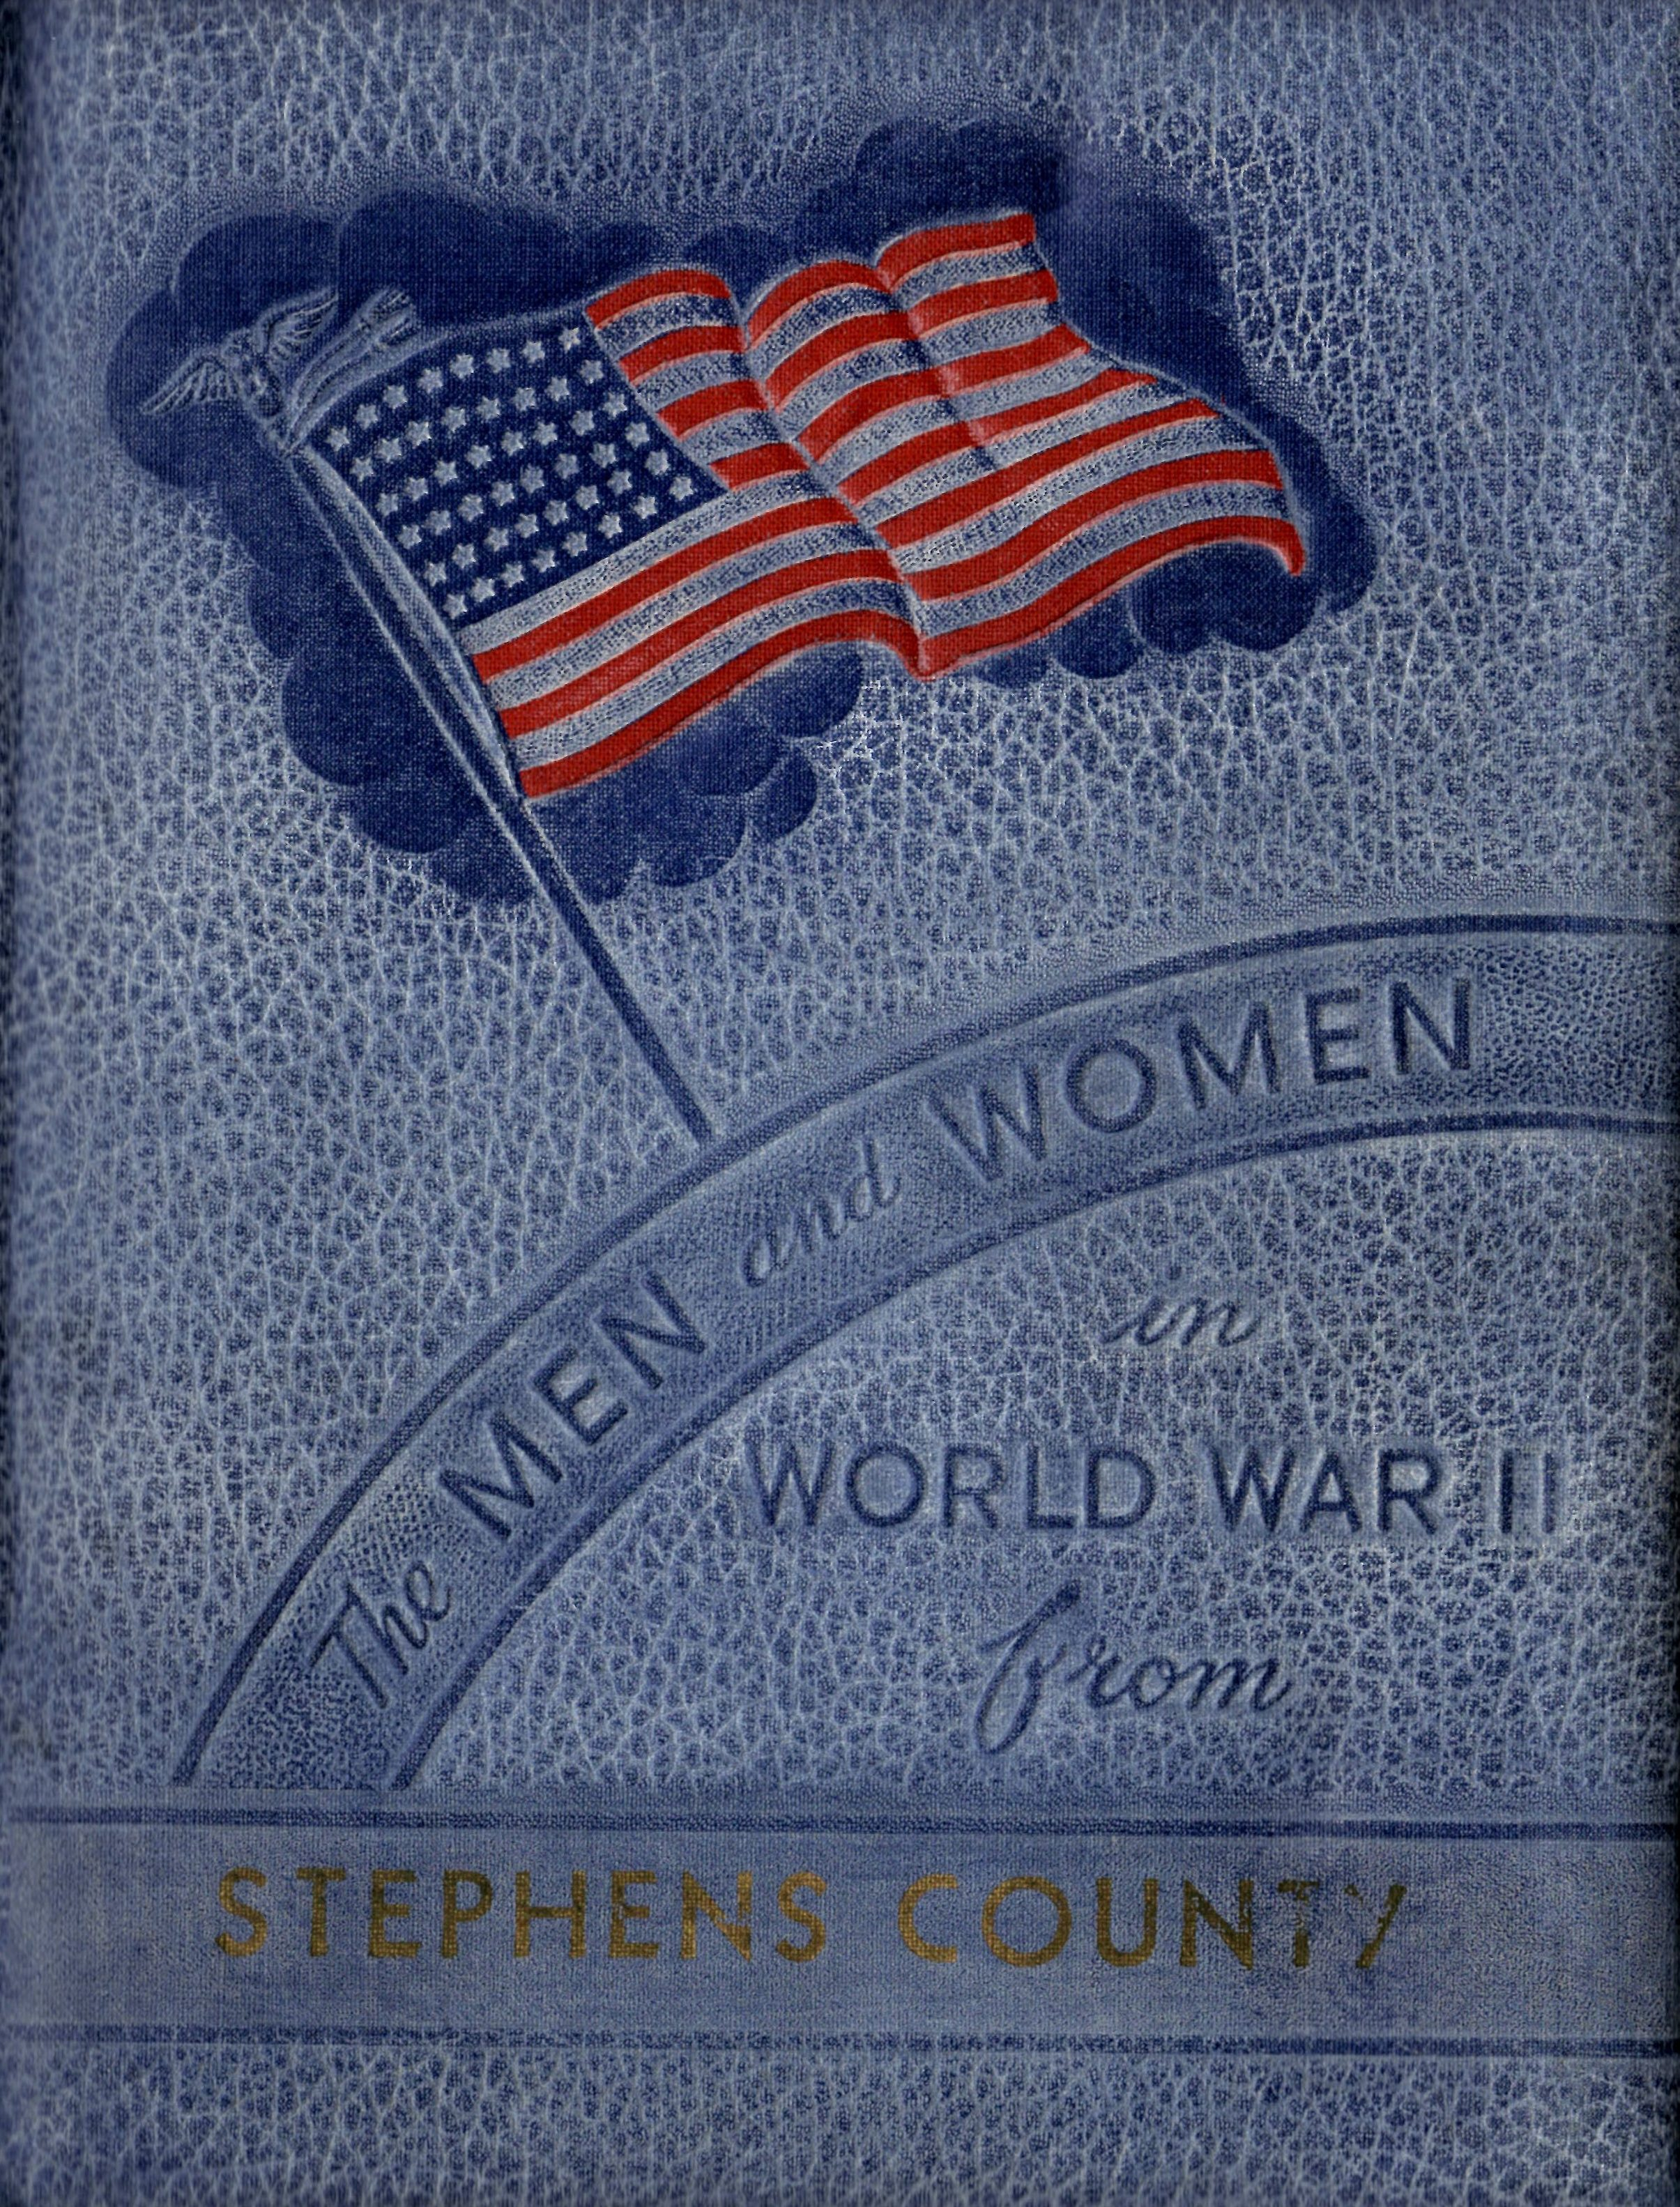 Men and women in the Armed Forces from Stephens County Texas World War Two WW2 WWII